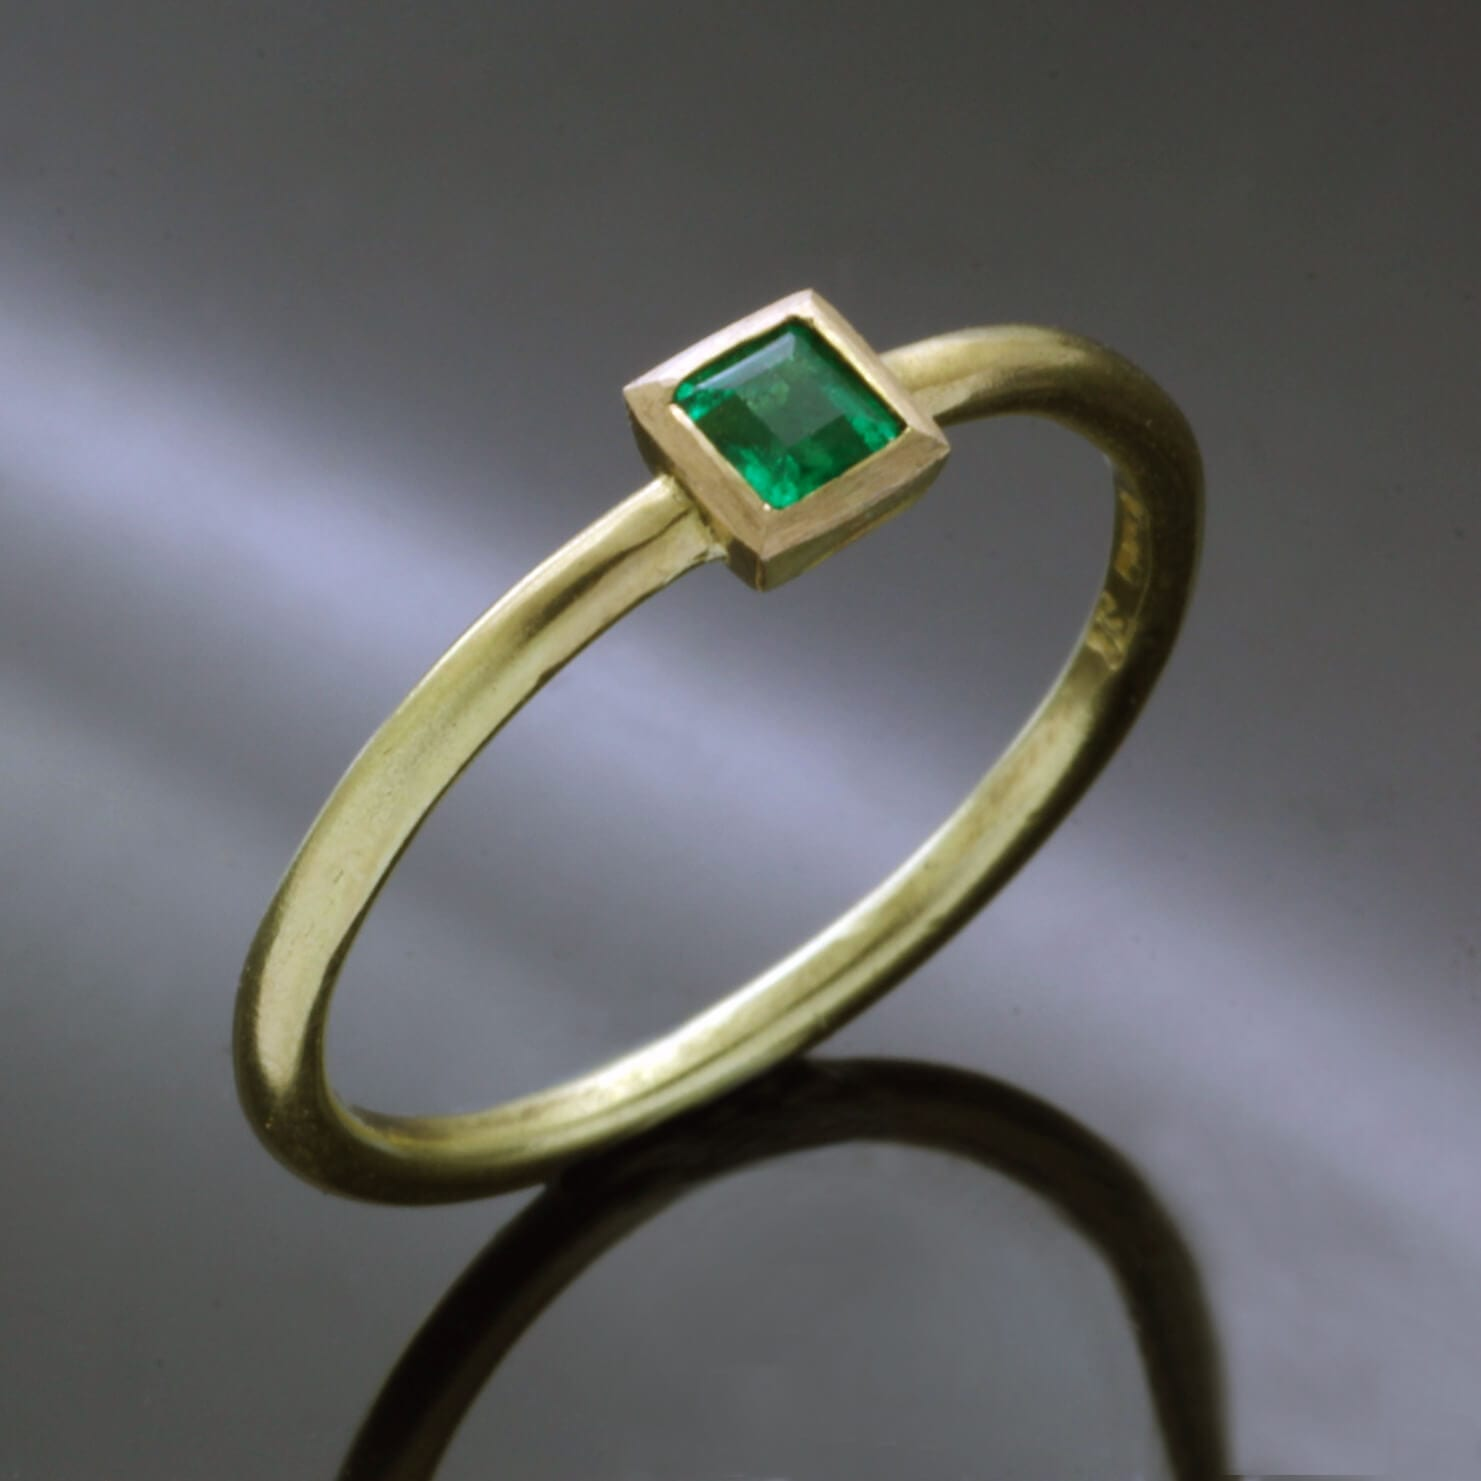 Handmade Yellow Gold stacking ring with Square cut Emerald gemstone